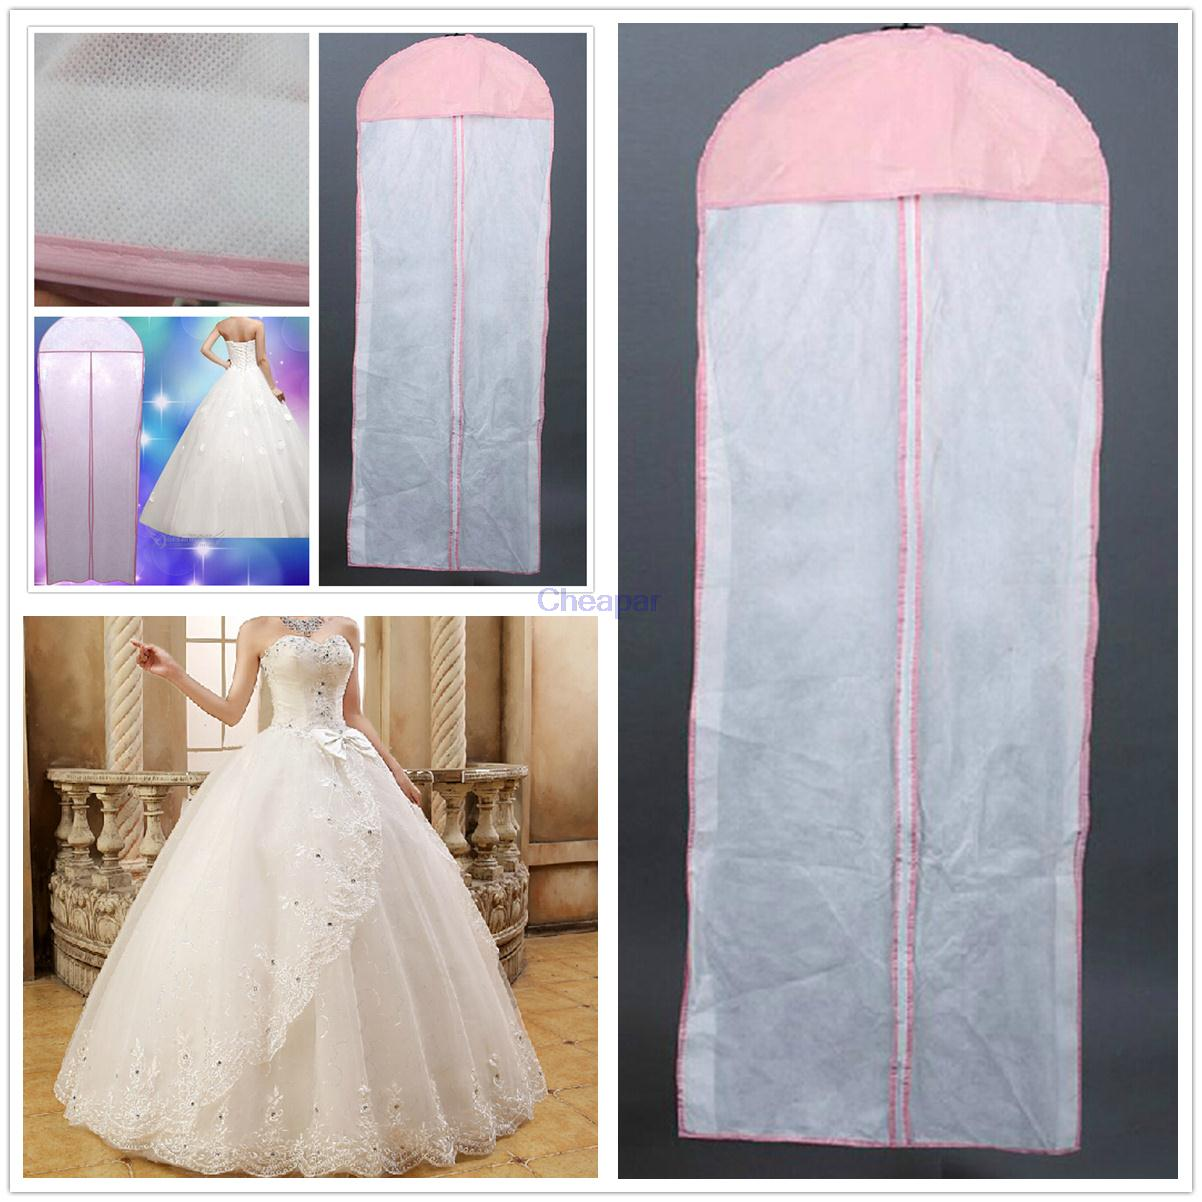 wedding dress storage wedding dress storage Heavyduty 4 5 Mil Clear Bridal Wedding Gown Dress Garment Bag Travel Storage Organize Bag Extra Long